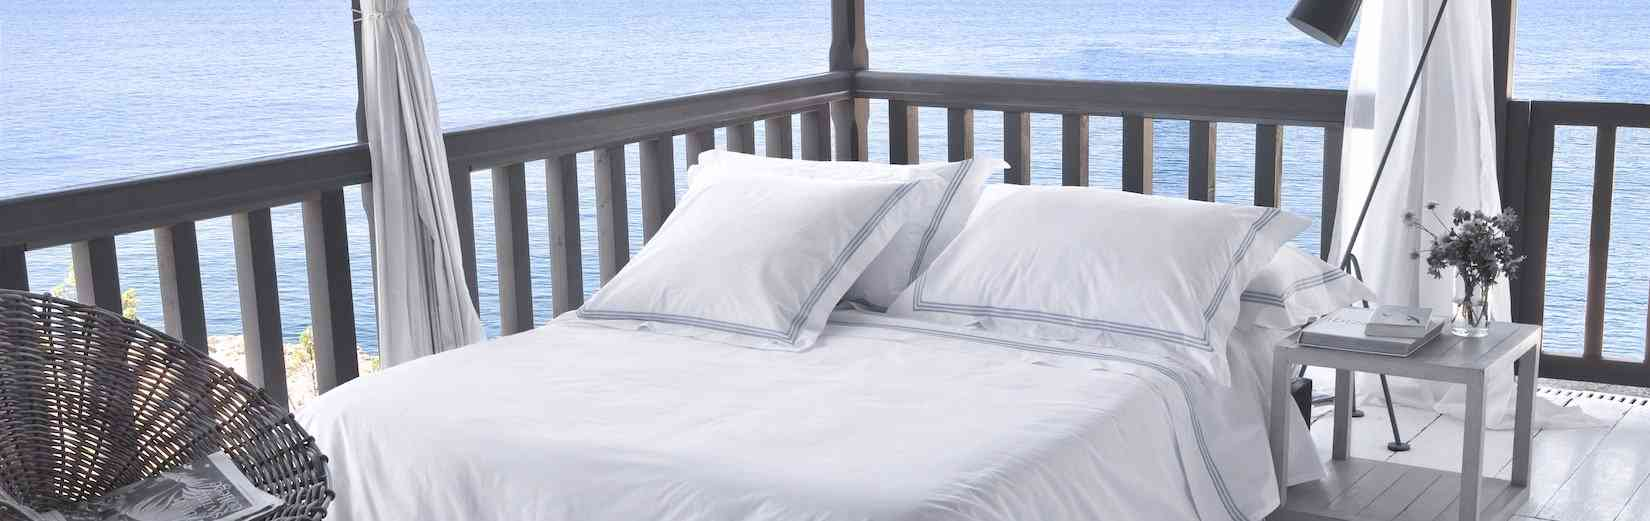 Standard Set of Pillowcases